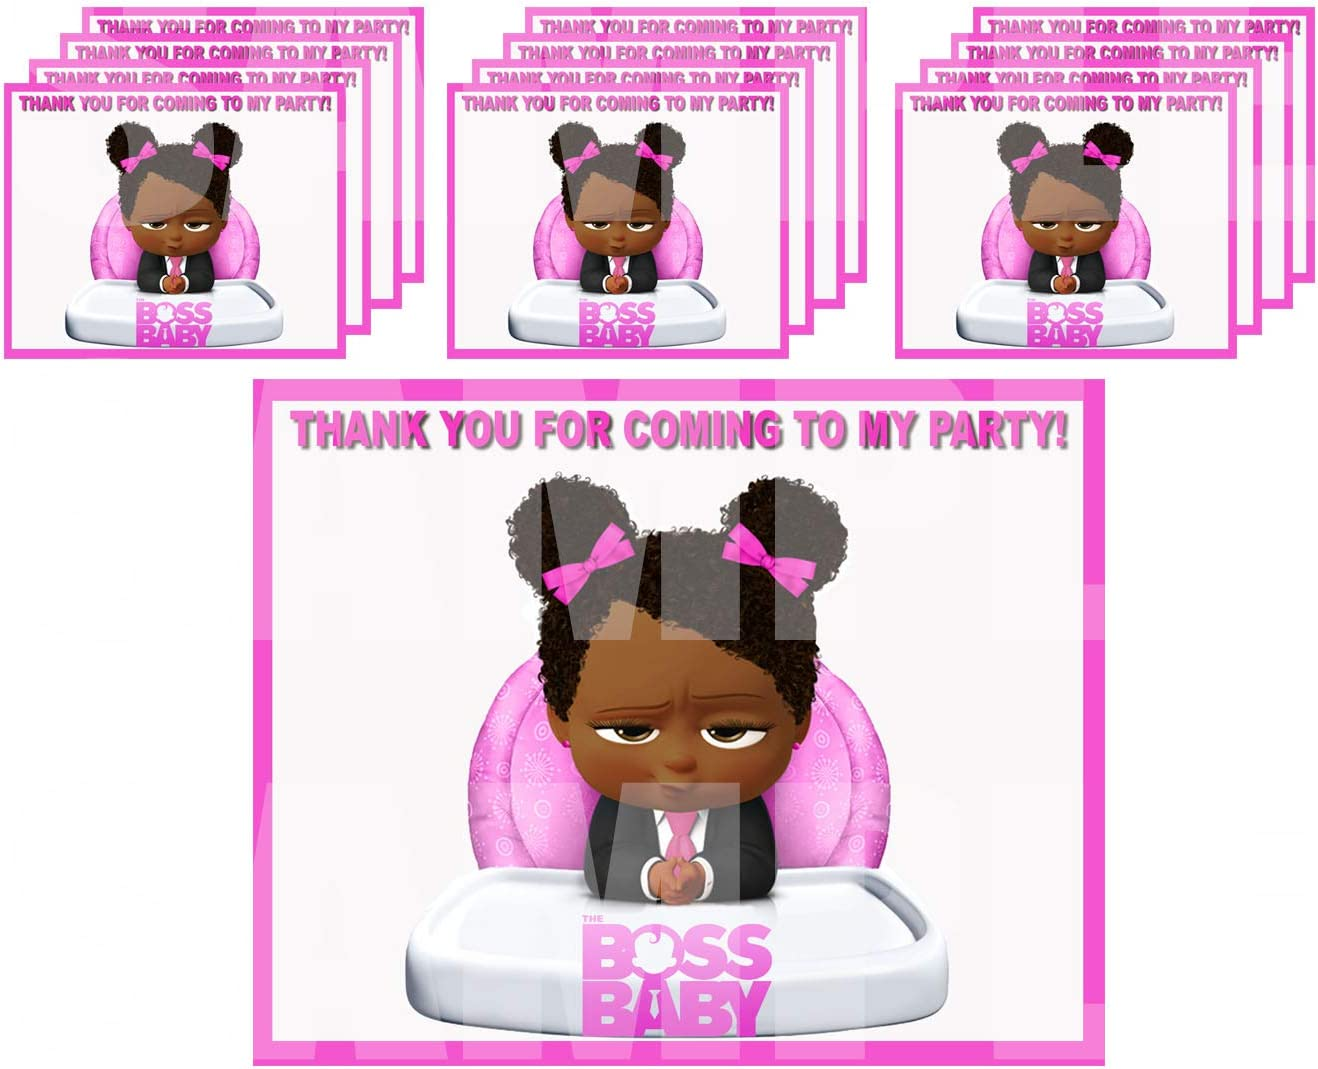 """Black Girl Boss Baby Stickers Party Favors Supplies Decorations Gift Bag Label Stickers ONLY 3.75"""" x 4.75"""" -12 pcs African American"""